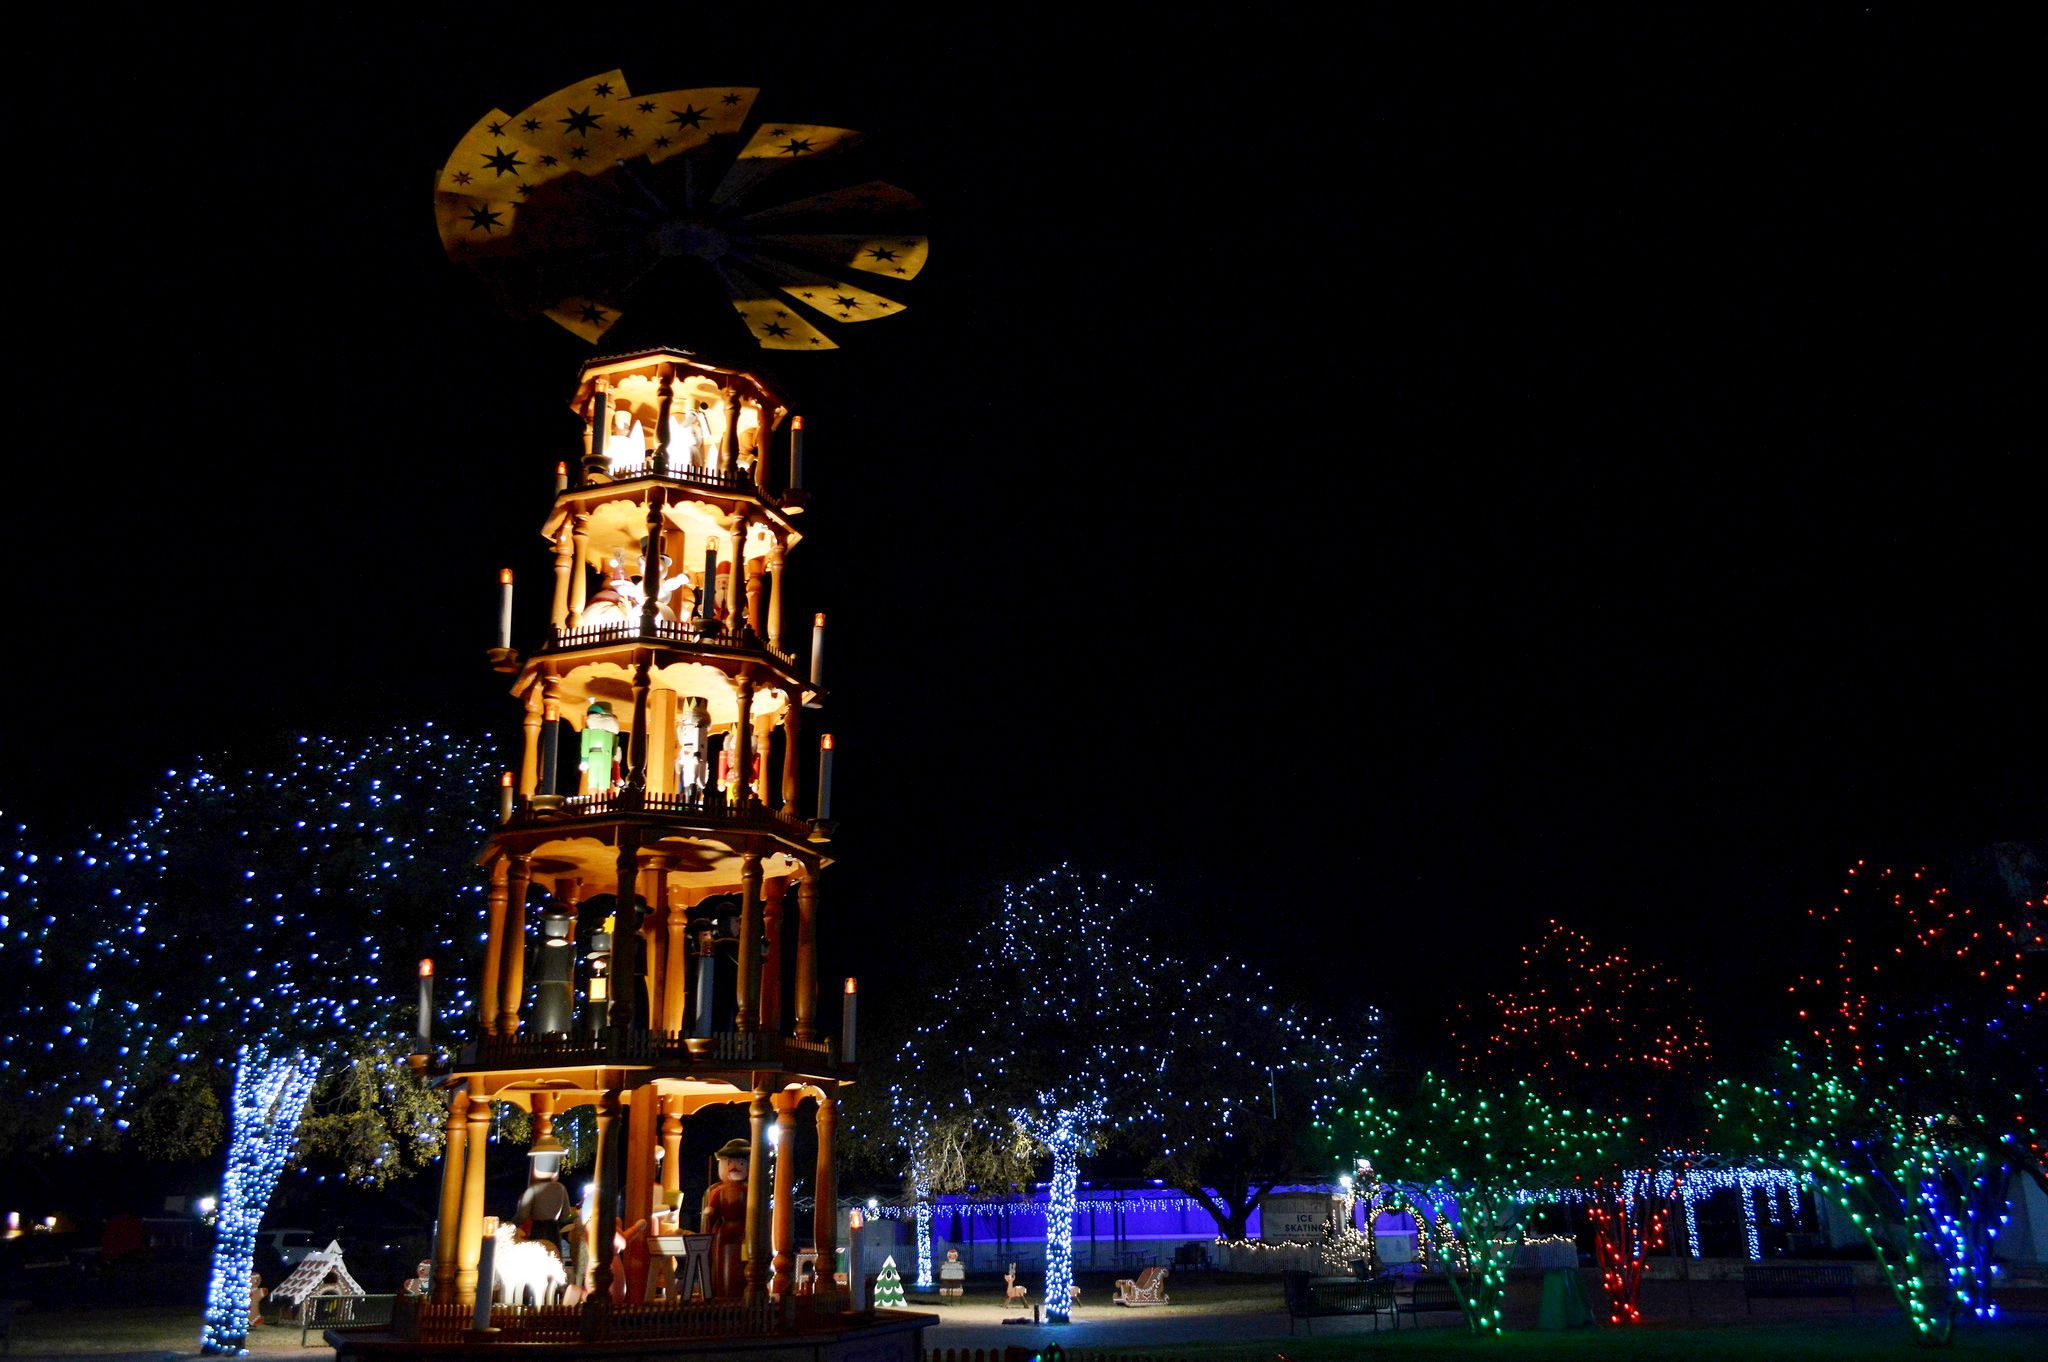 Marble Falls Christmas Lights.Texas Hill Country Christmas Lights Trail And Events